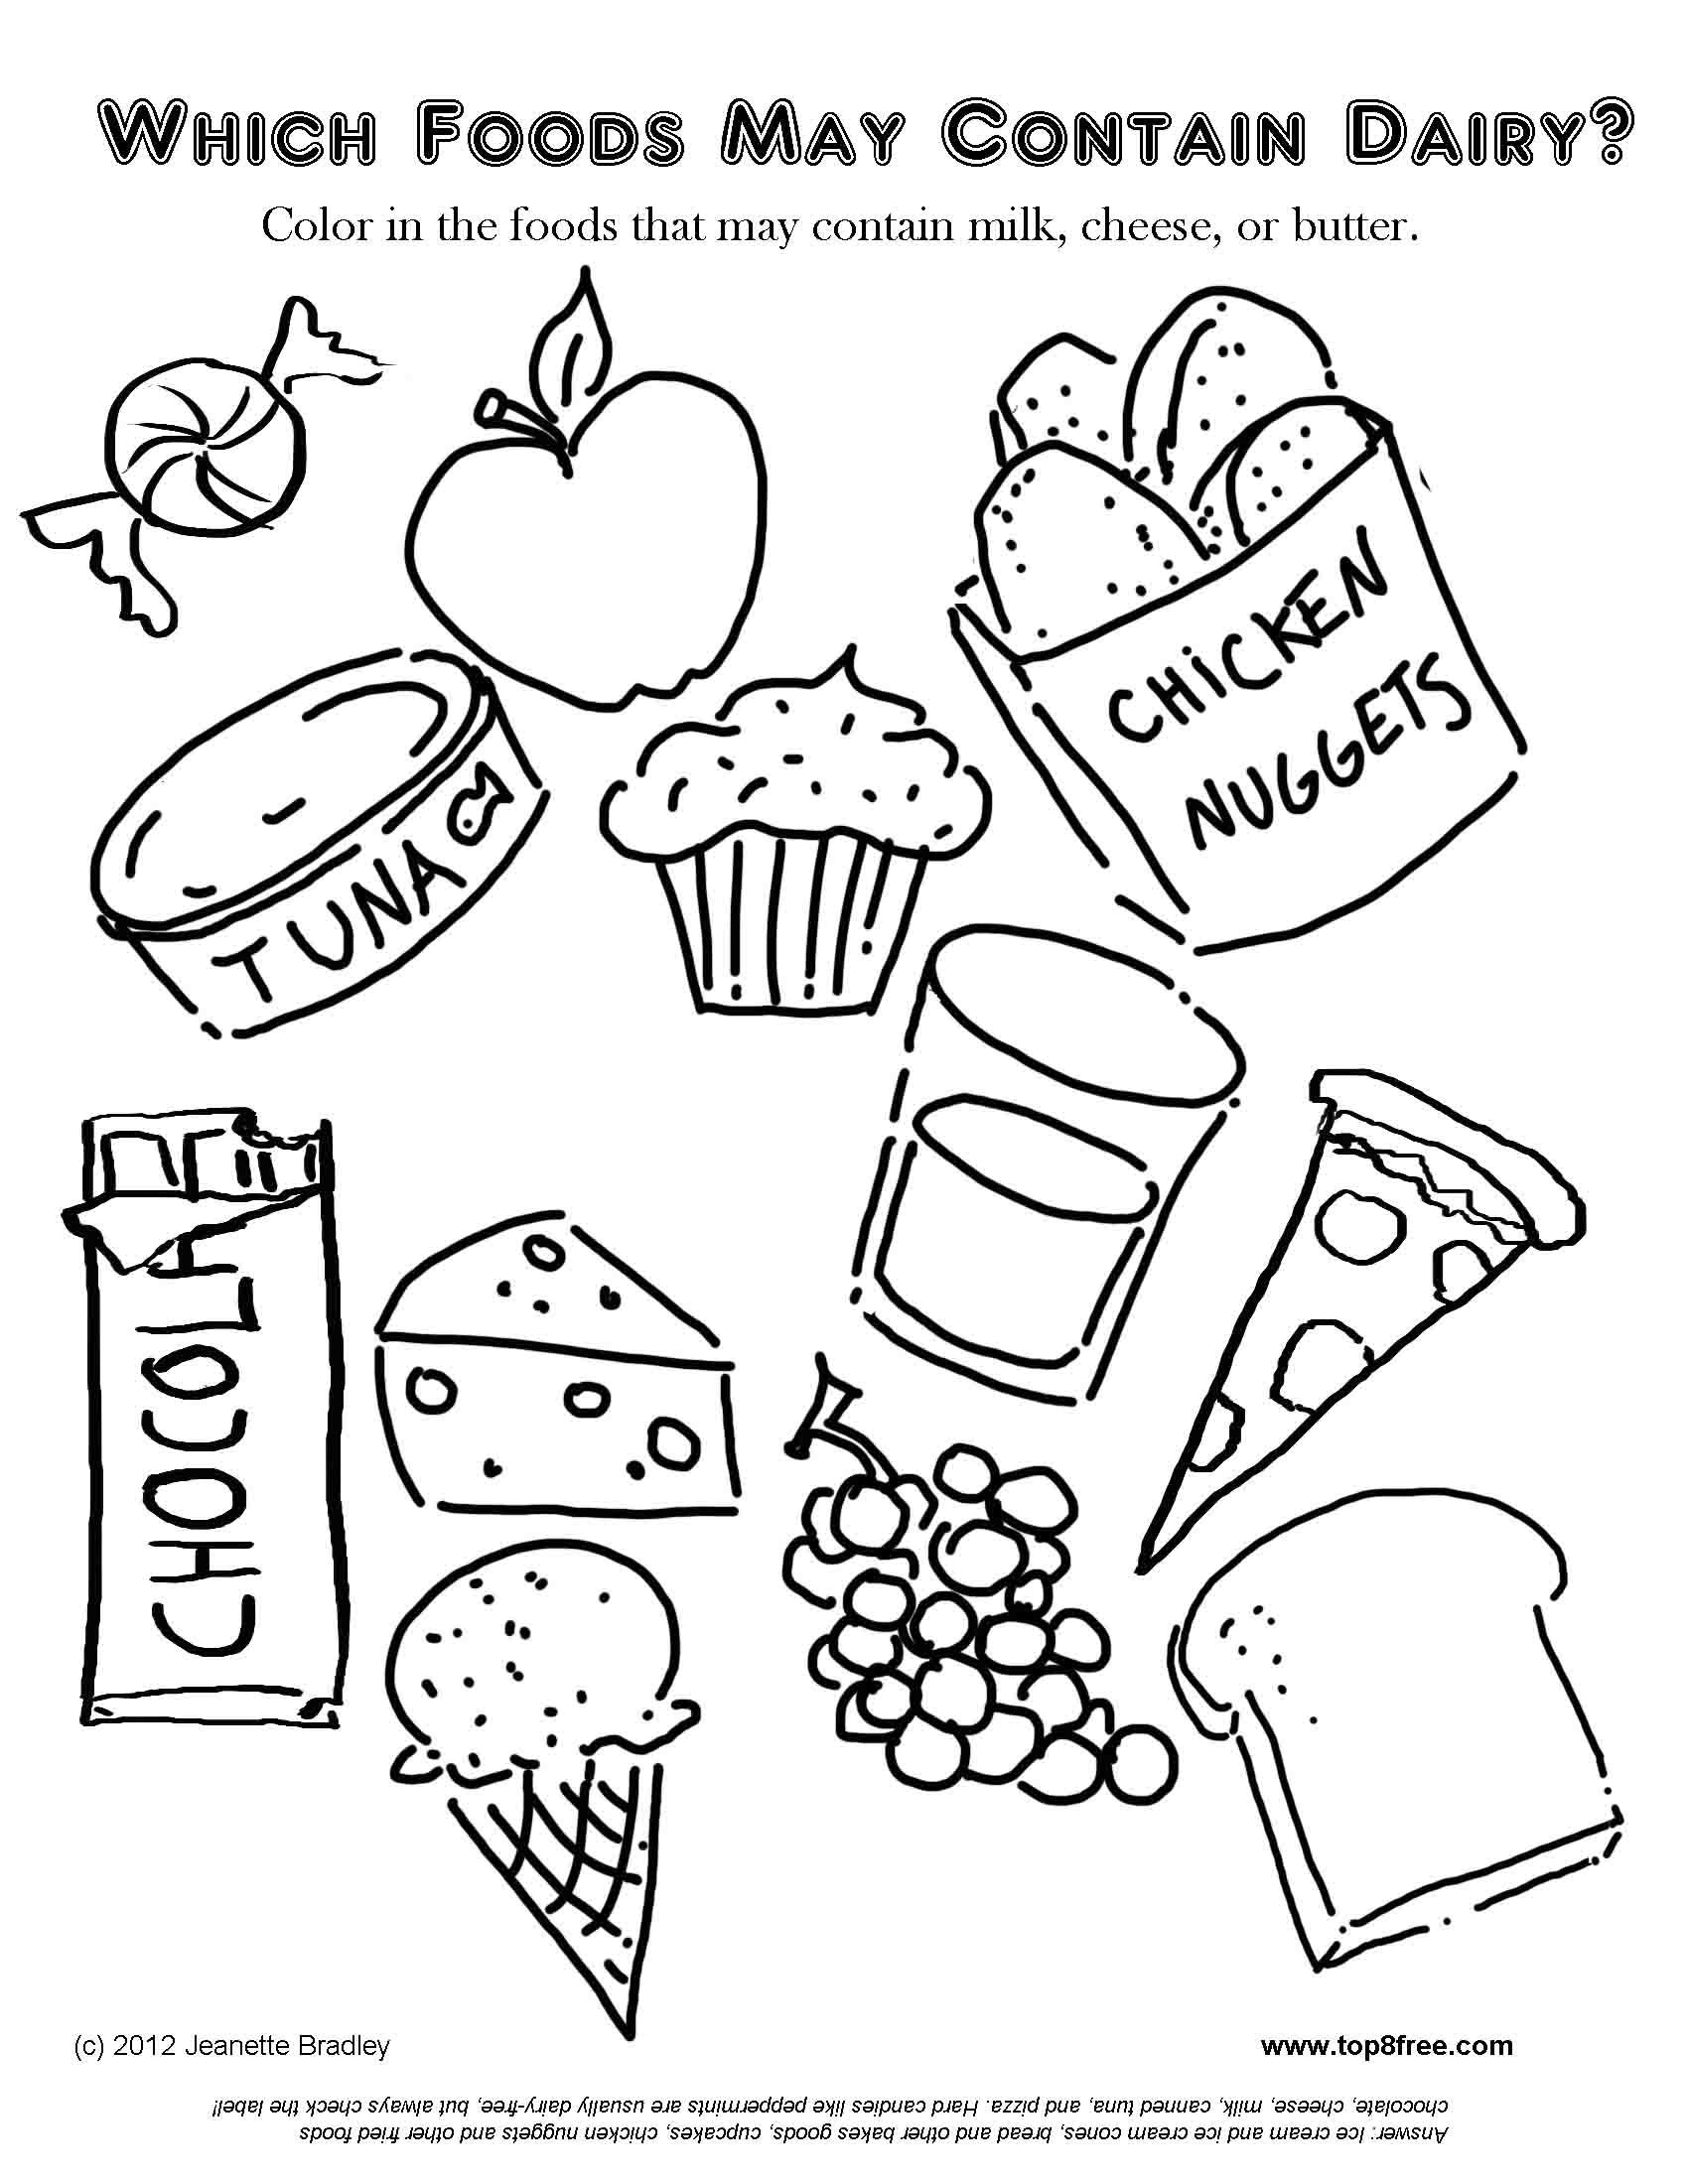 food allergy coloring pages for kids looking for free diet tips